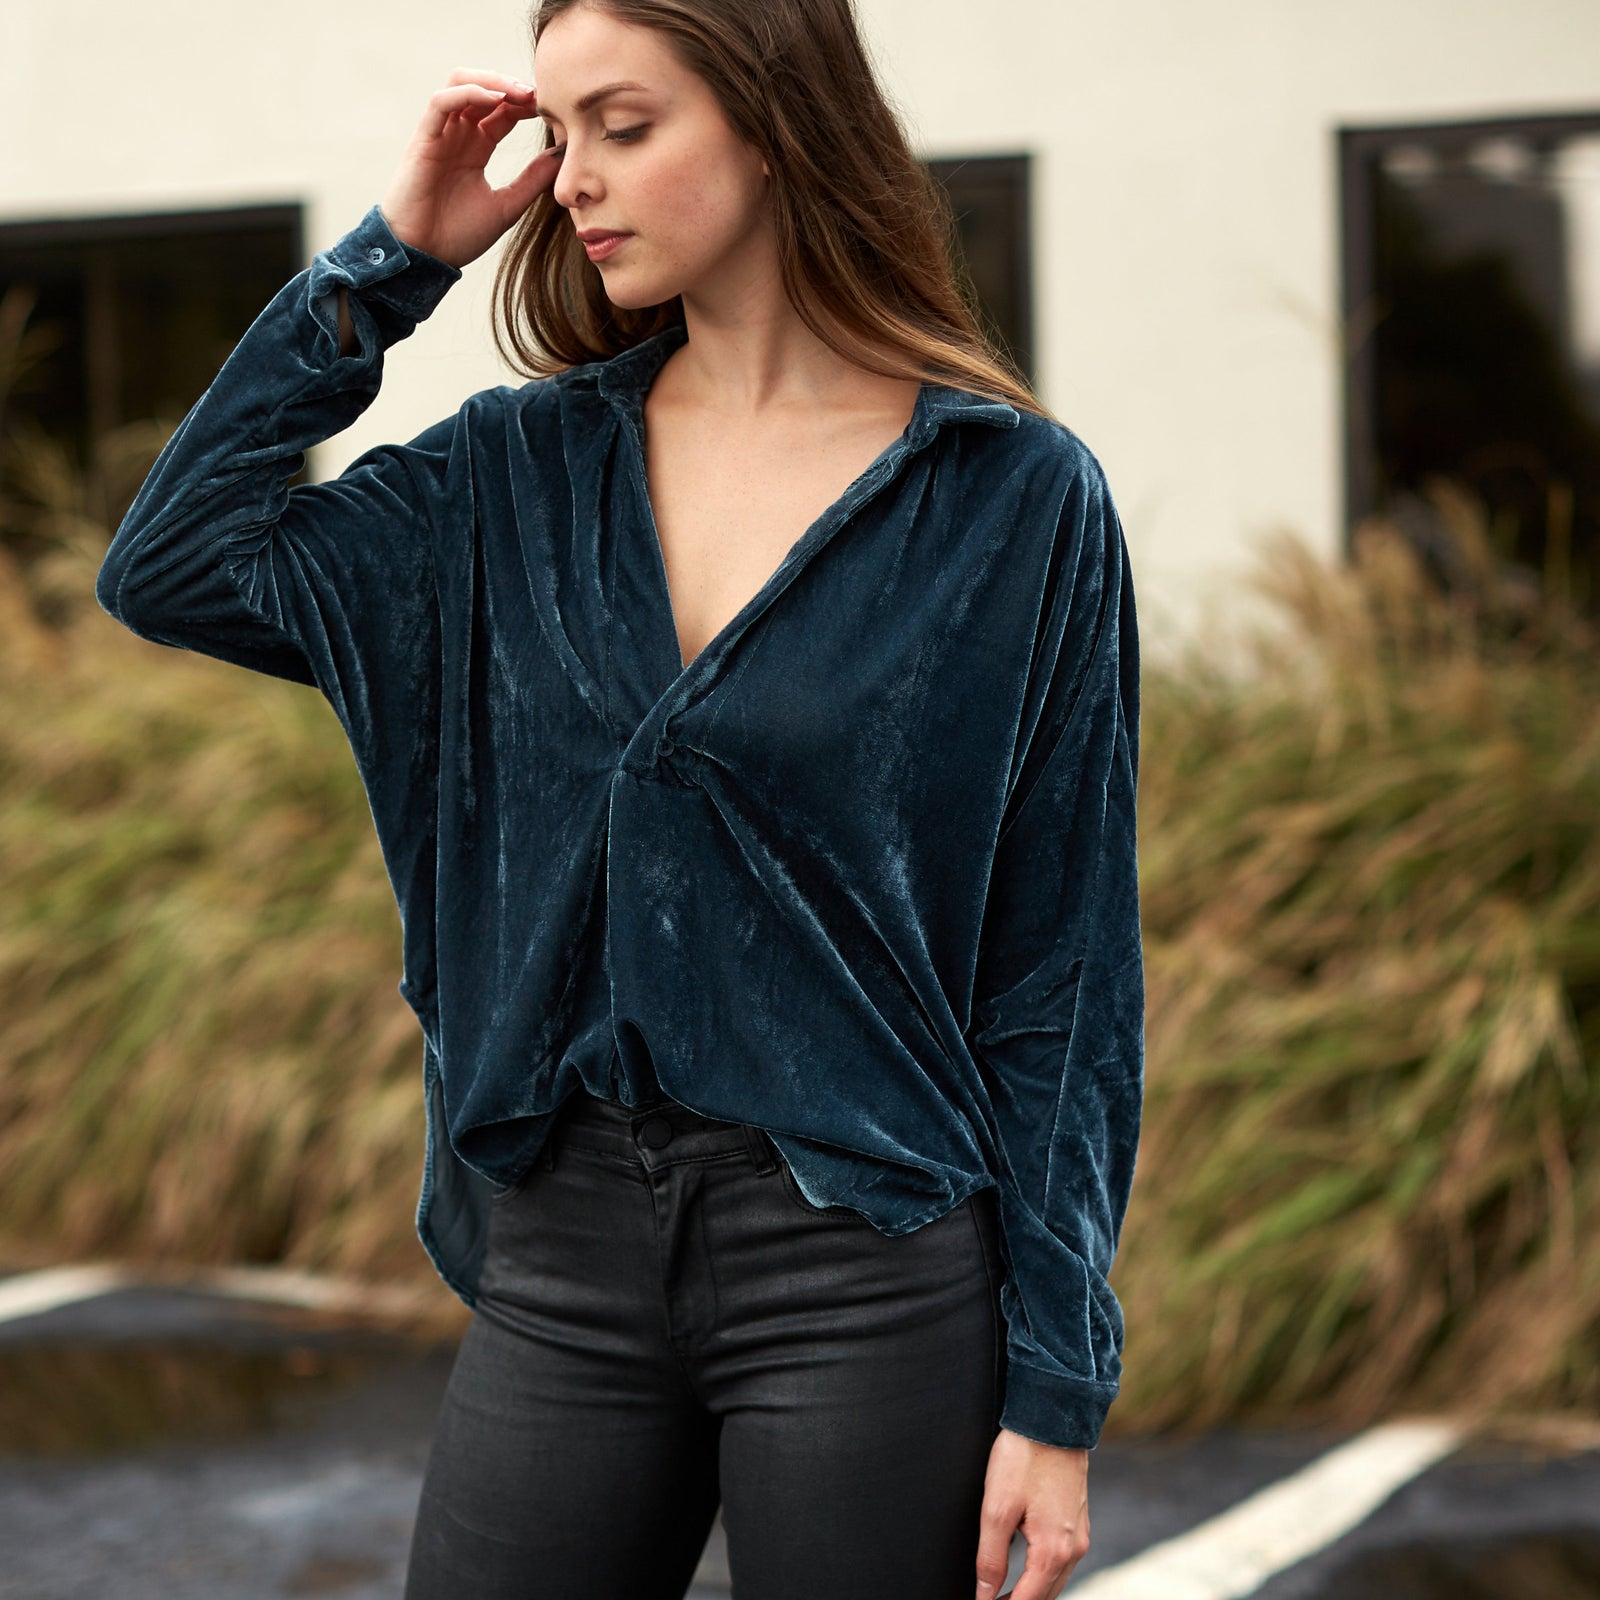 fab'rik featured category: Shop Bold Tops